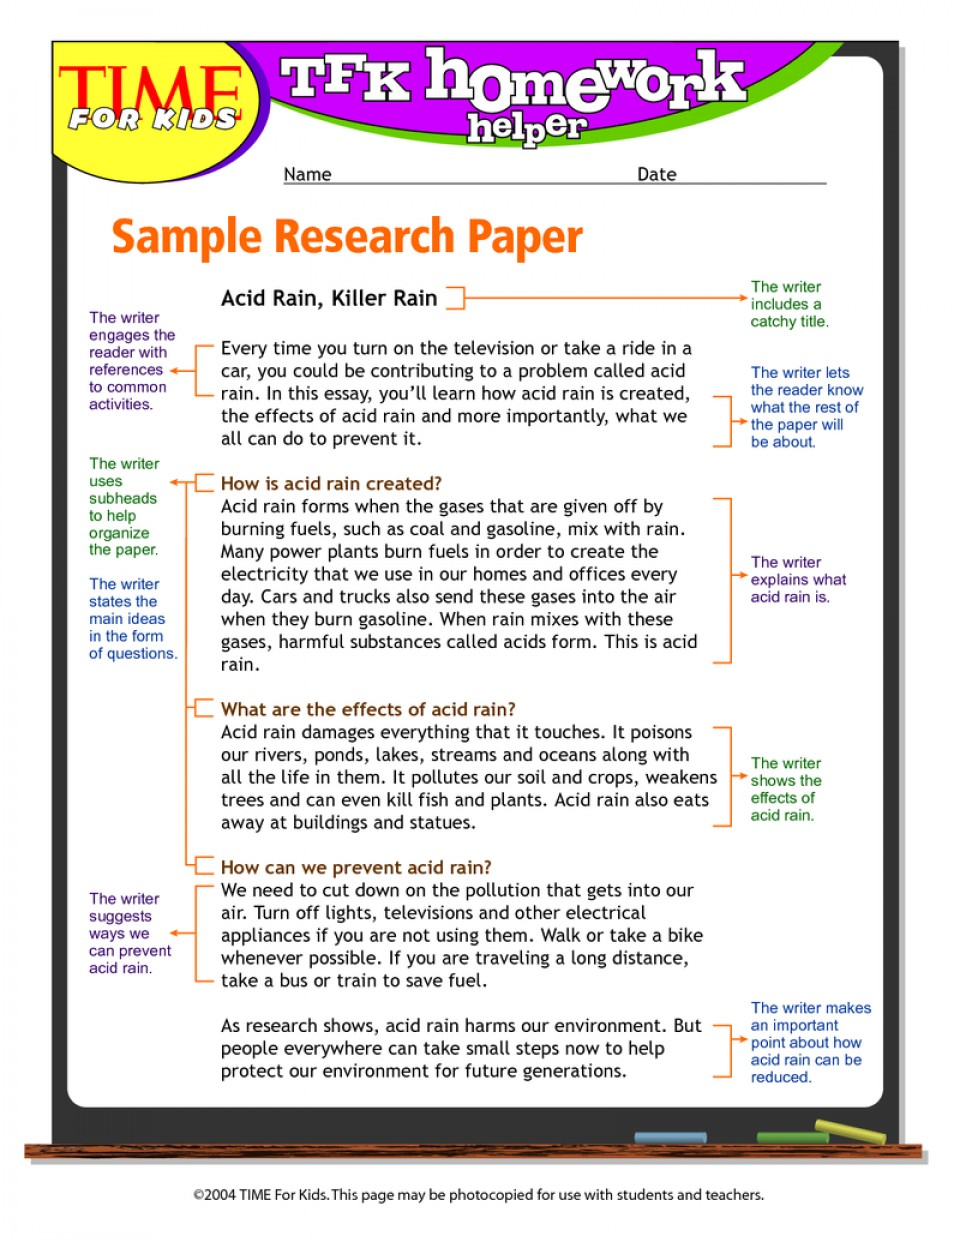 009 How To Do Research Top A Paper Project Book Write Proposal In Apa Format 960